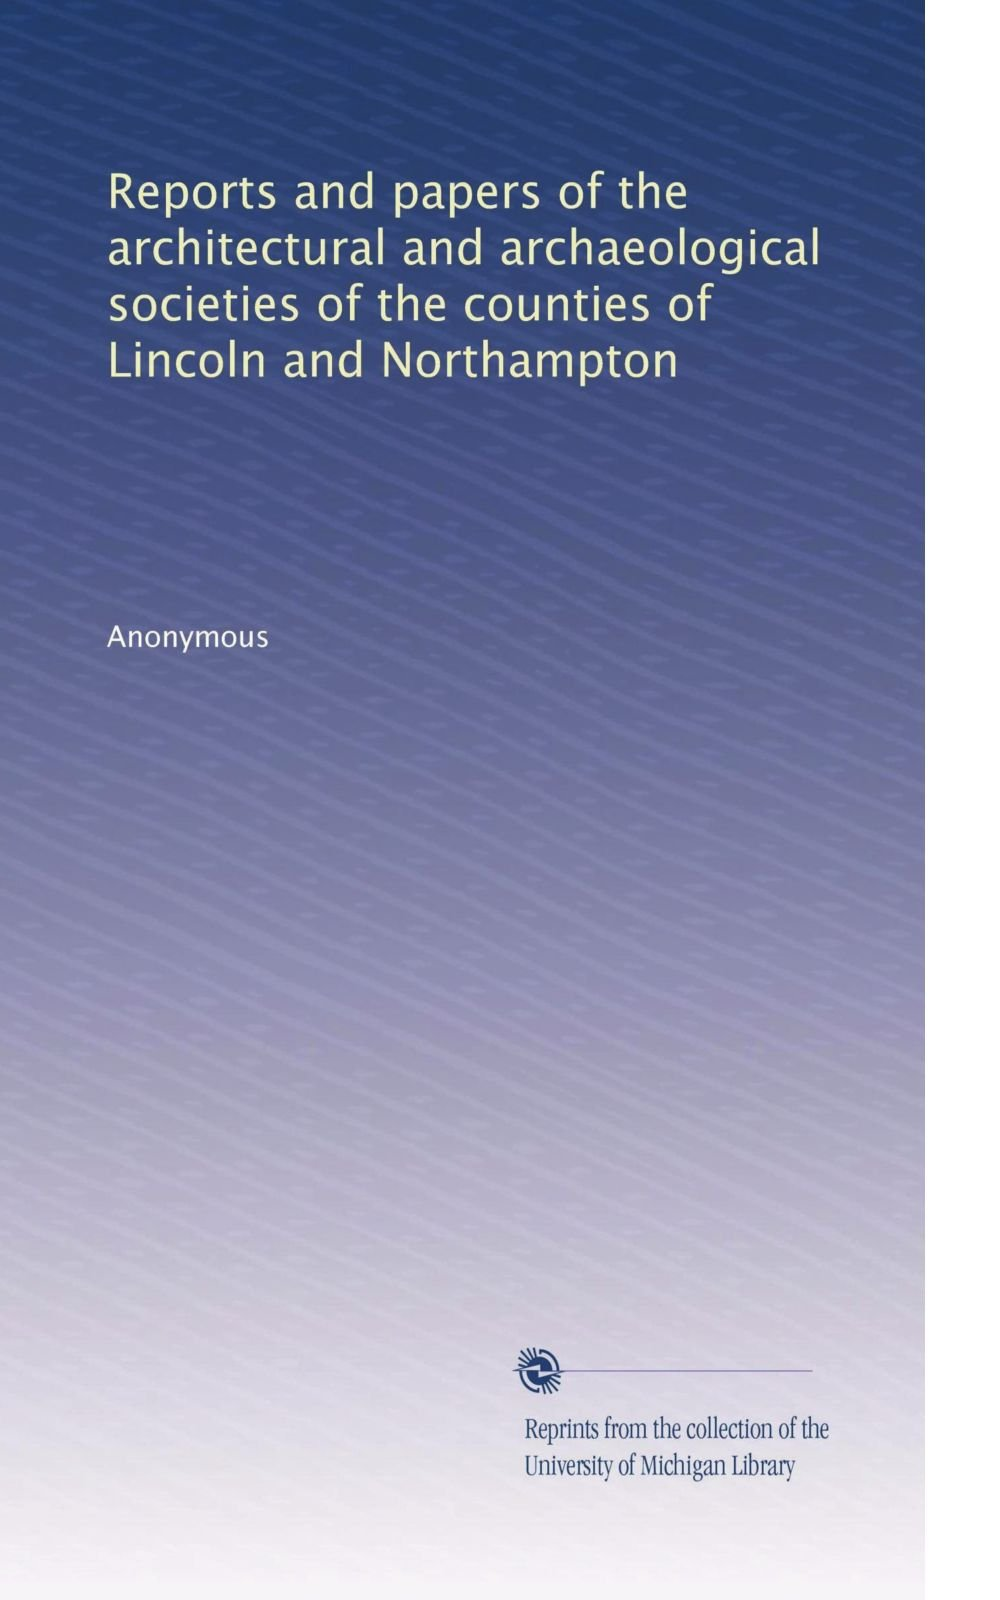 Download Reports and papers of the architectural and archaeological societies of the counties of Lincoln and Northampton PDF